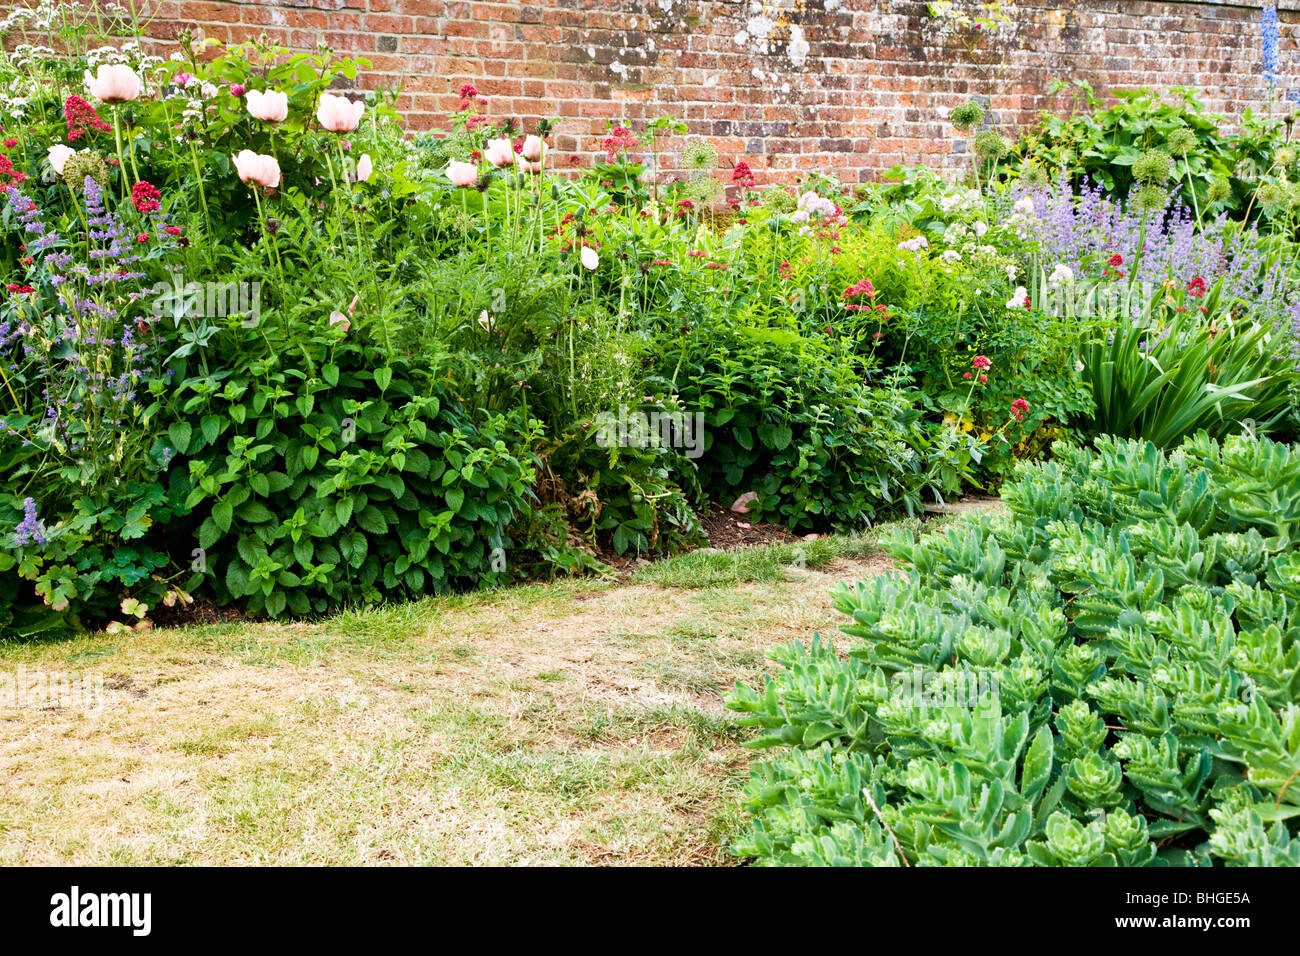 Part of a herbaceous perennial flower border in a walled garden in an English country garden. - Stock Image